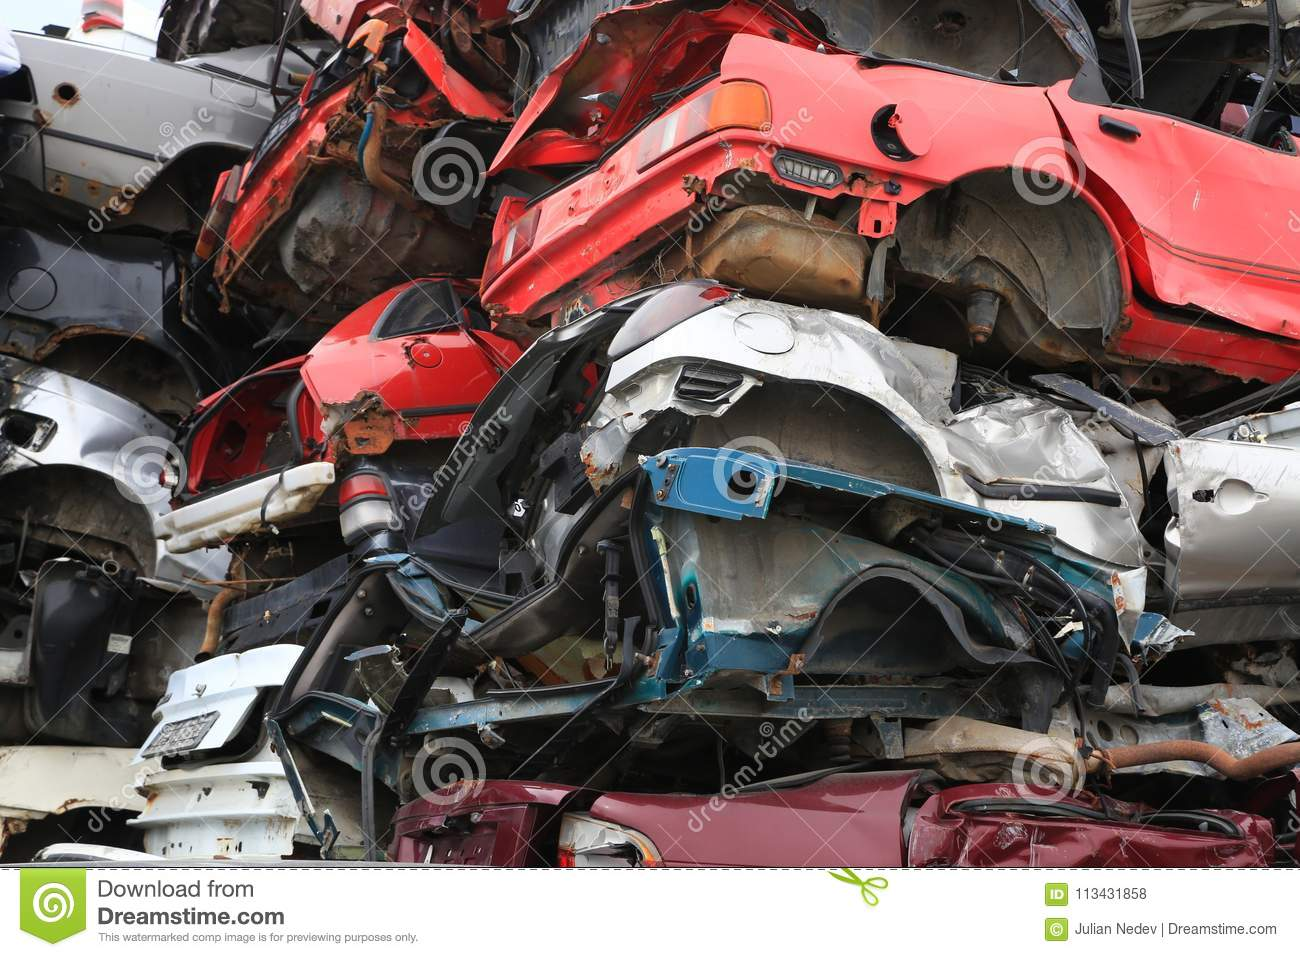 Cars for scrap stock photo. Image of recycling, cars - 113431858